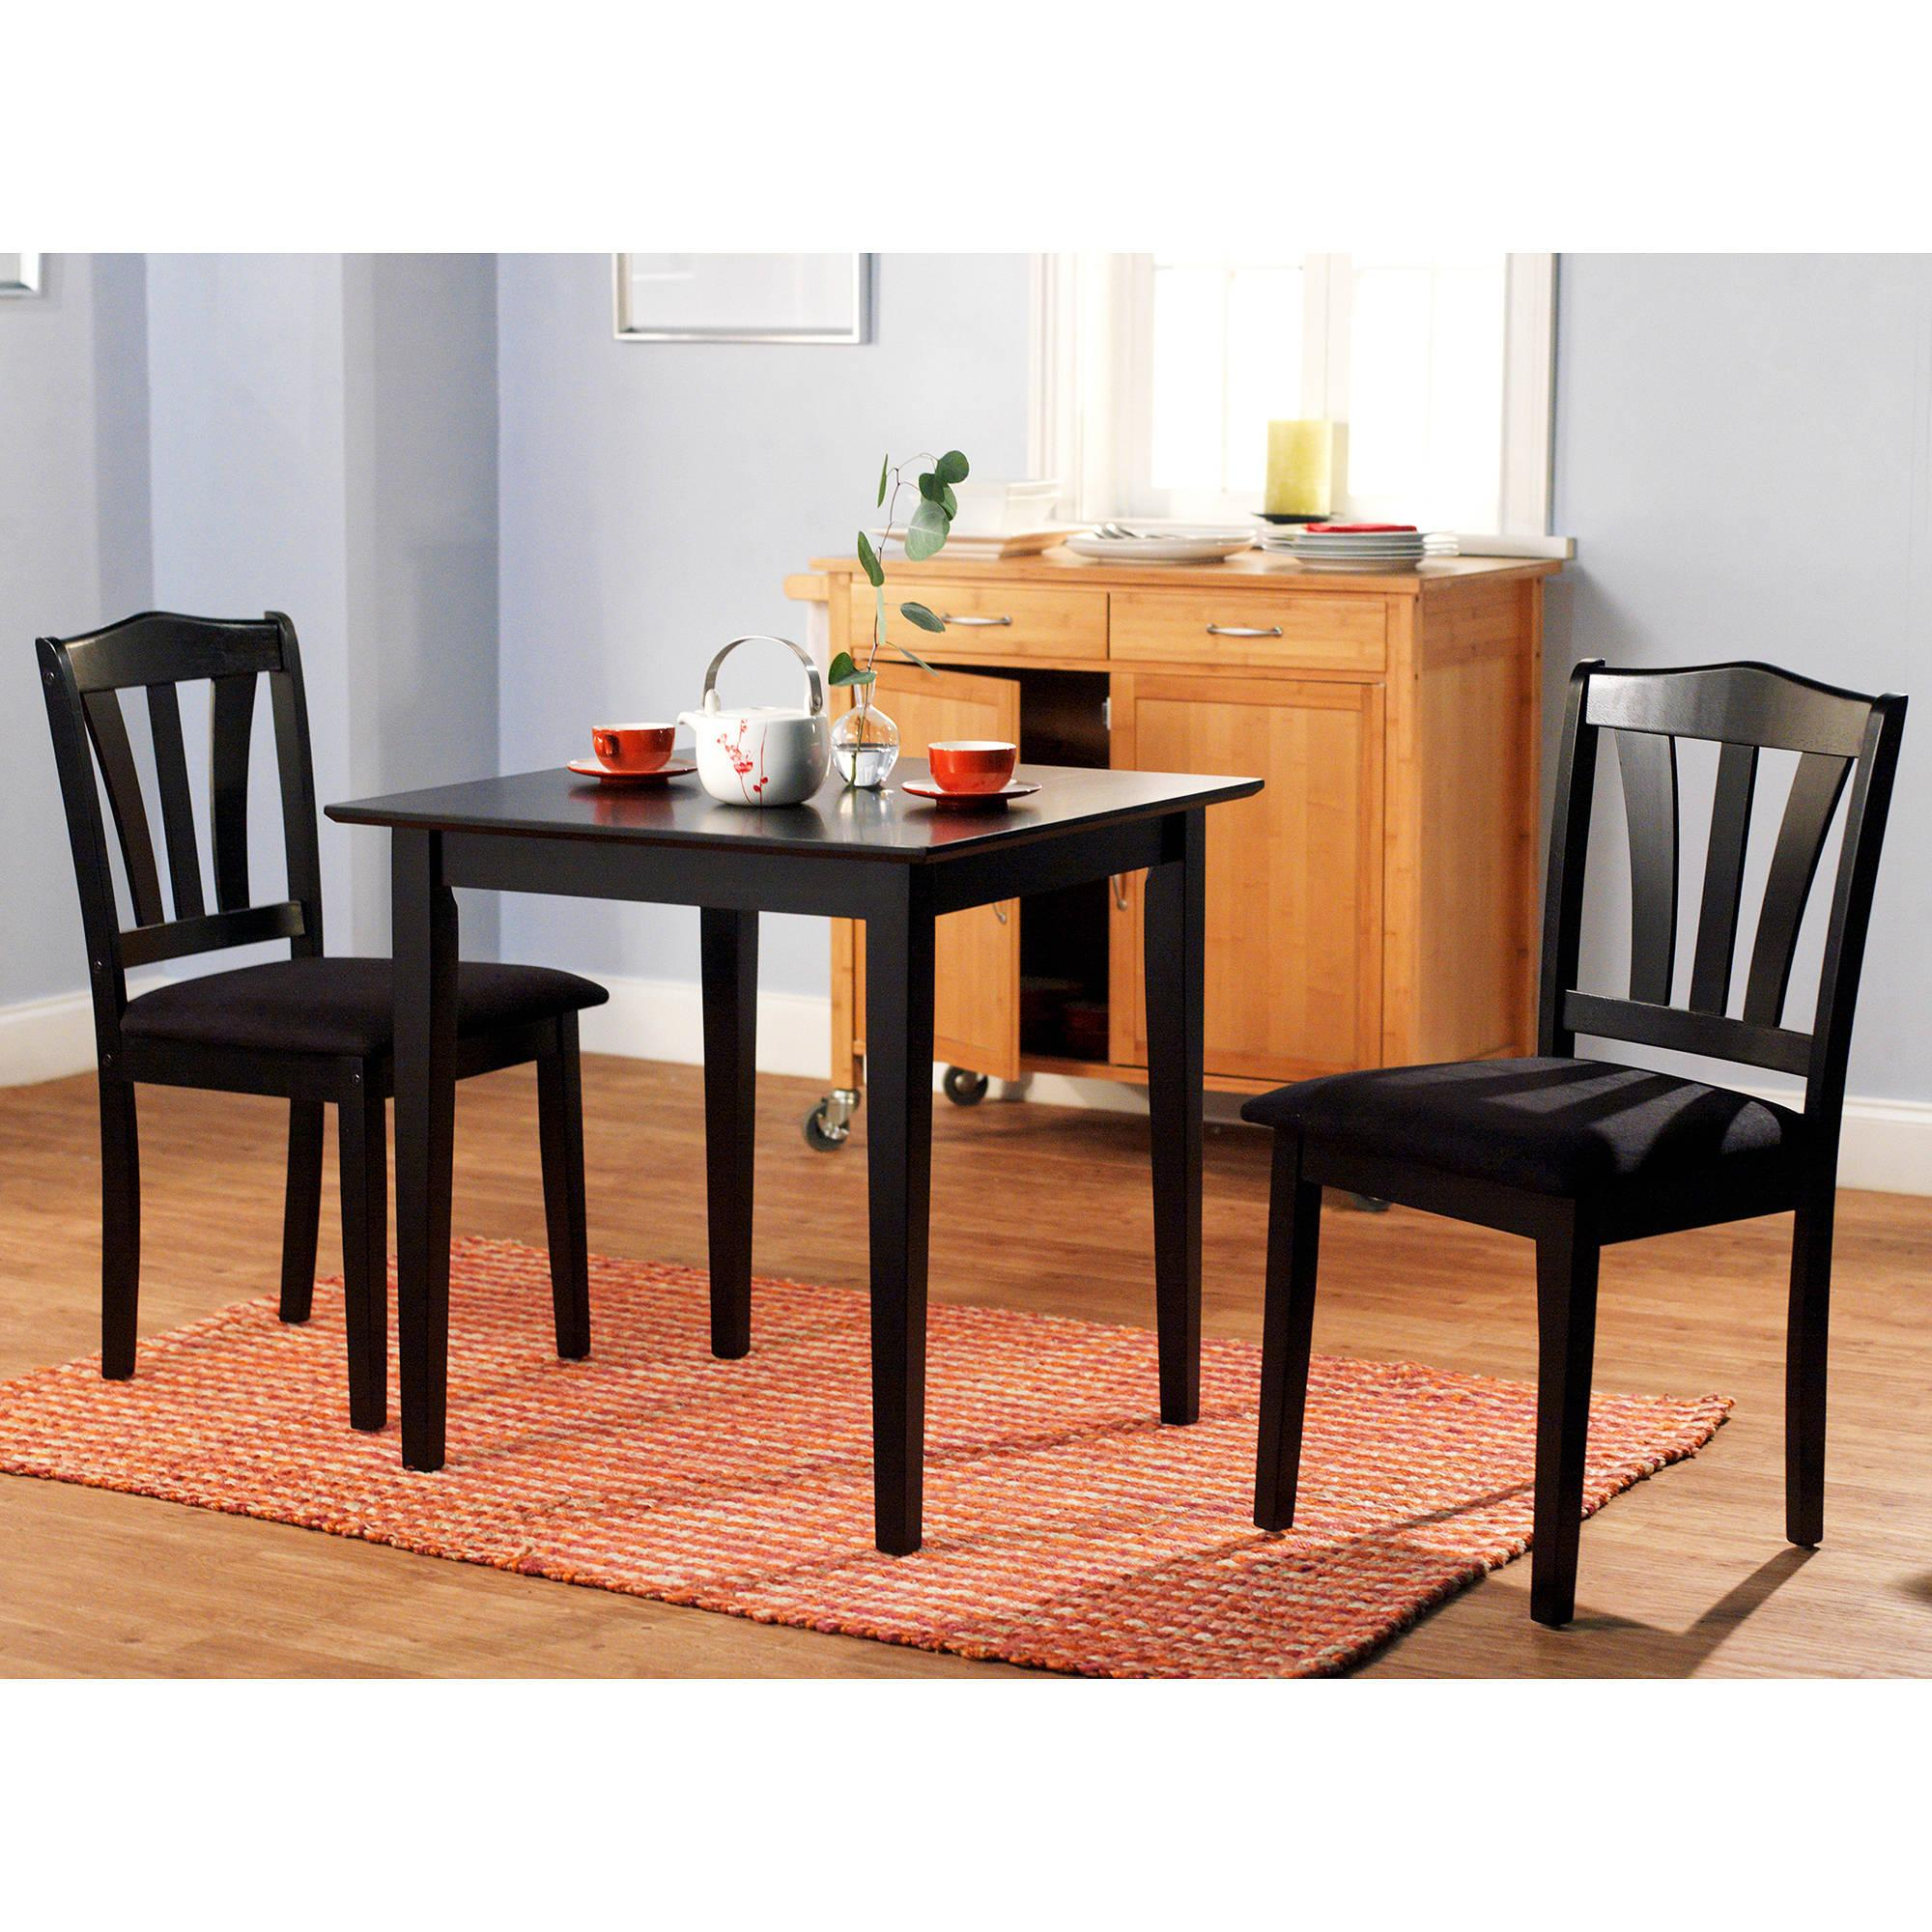 3 Piece Dining Set Table 2 Chairs Kitchen Room Wood Furniture